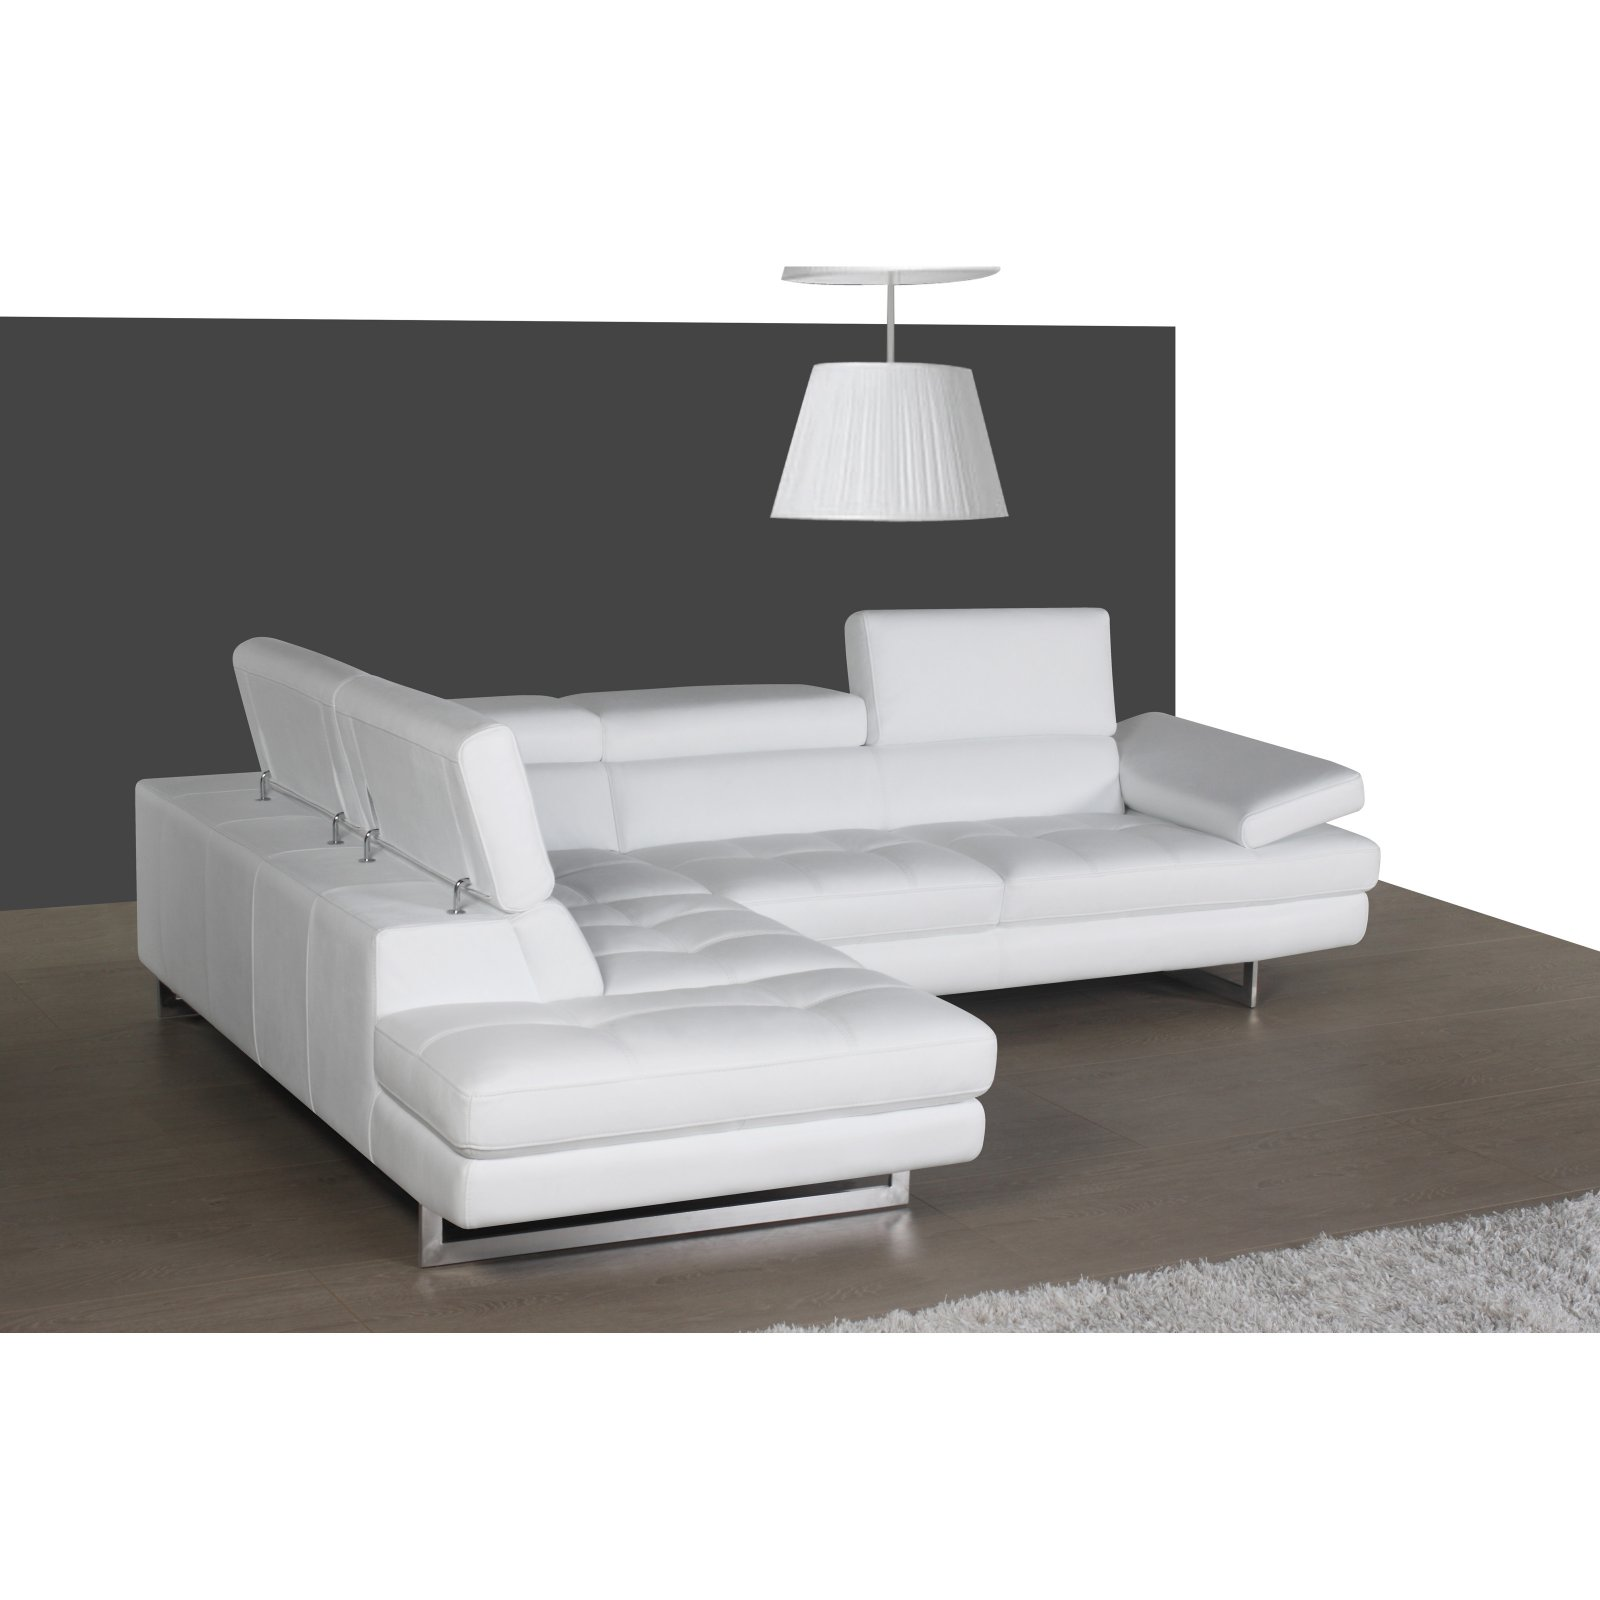 J&M Furniture A761 Left-facing Chaise Sectional Sofa